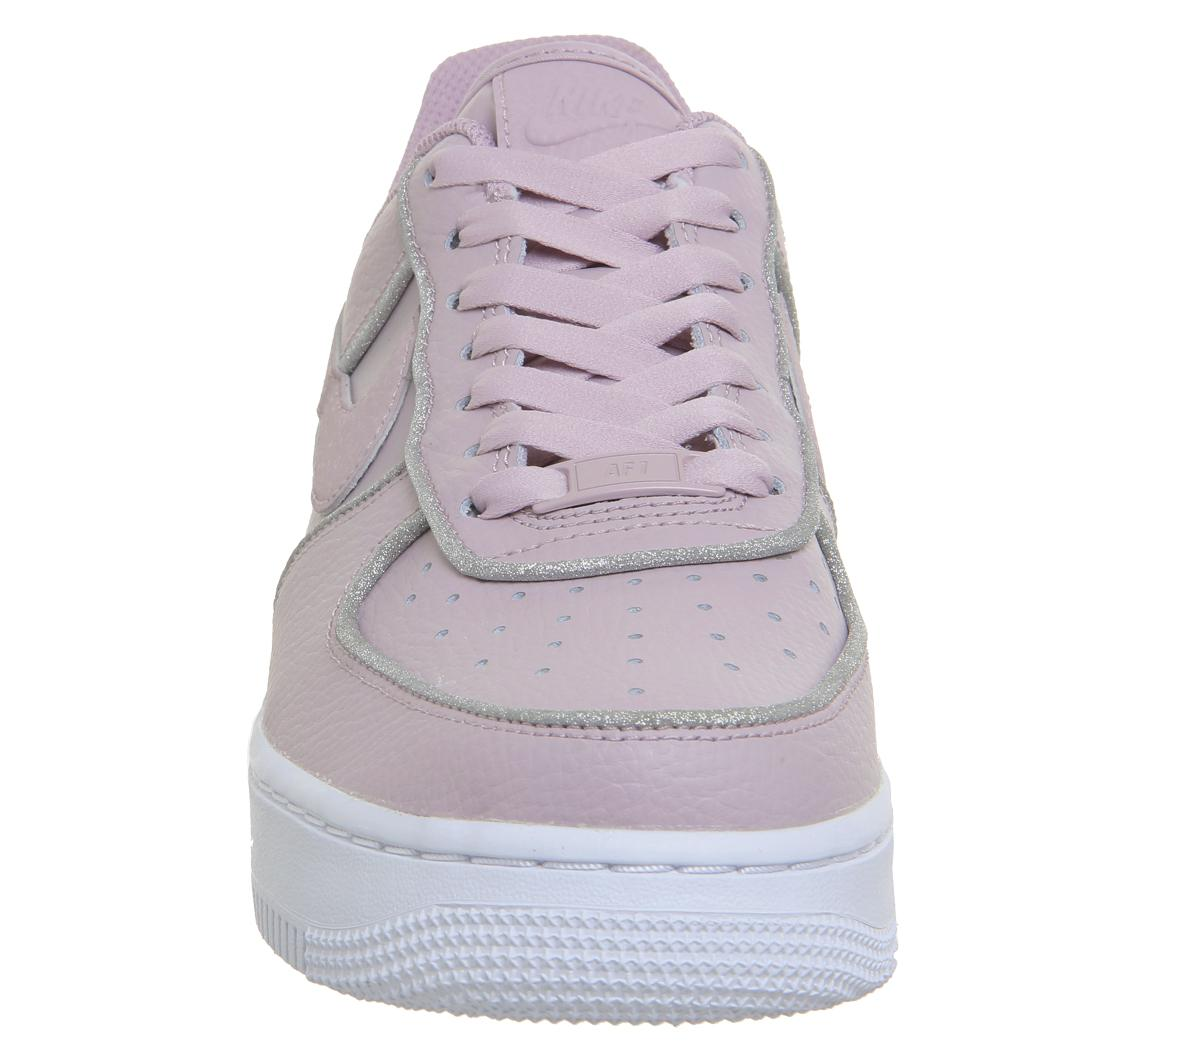 Nike Air Force 1 07 Trainers Particle Rose Glitter - Sneaker ...